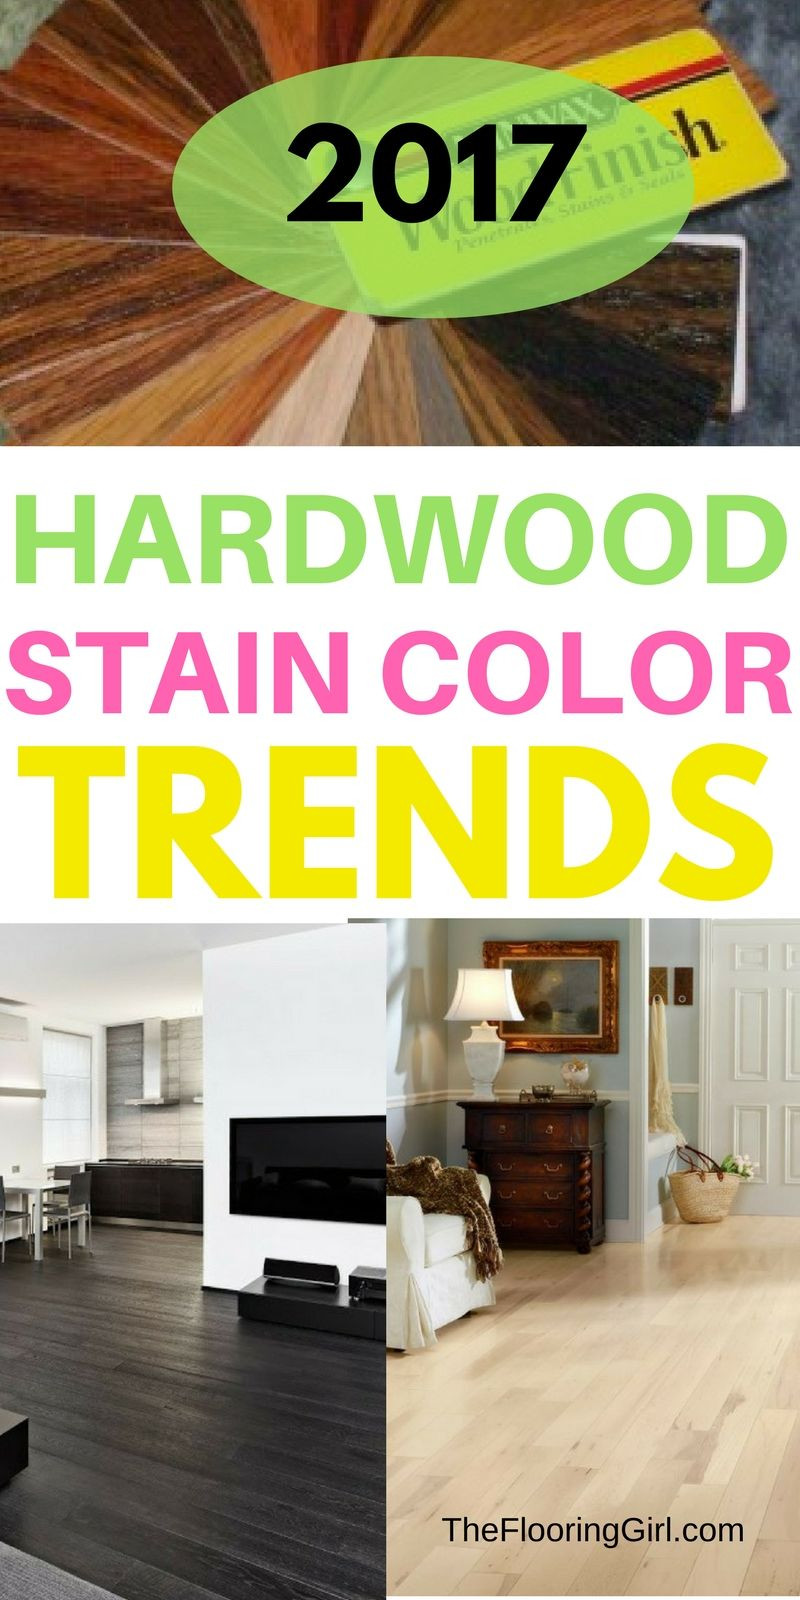 staining hardwood floors how long to dry of hardwood flooring stain color trends 2018 more from the flooring in hardwood flooring stain color trends for 2017 hardwood colors that are in style theflooringgirl com